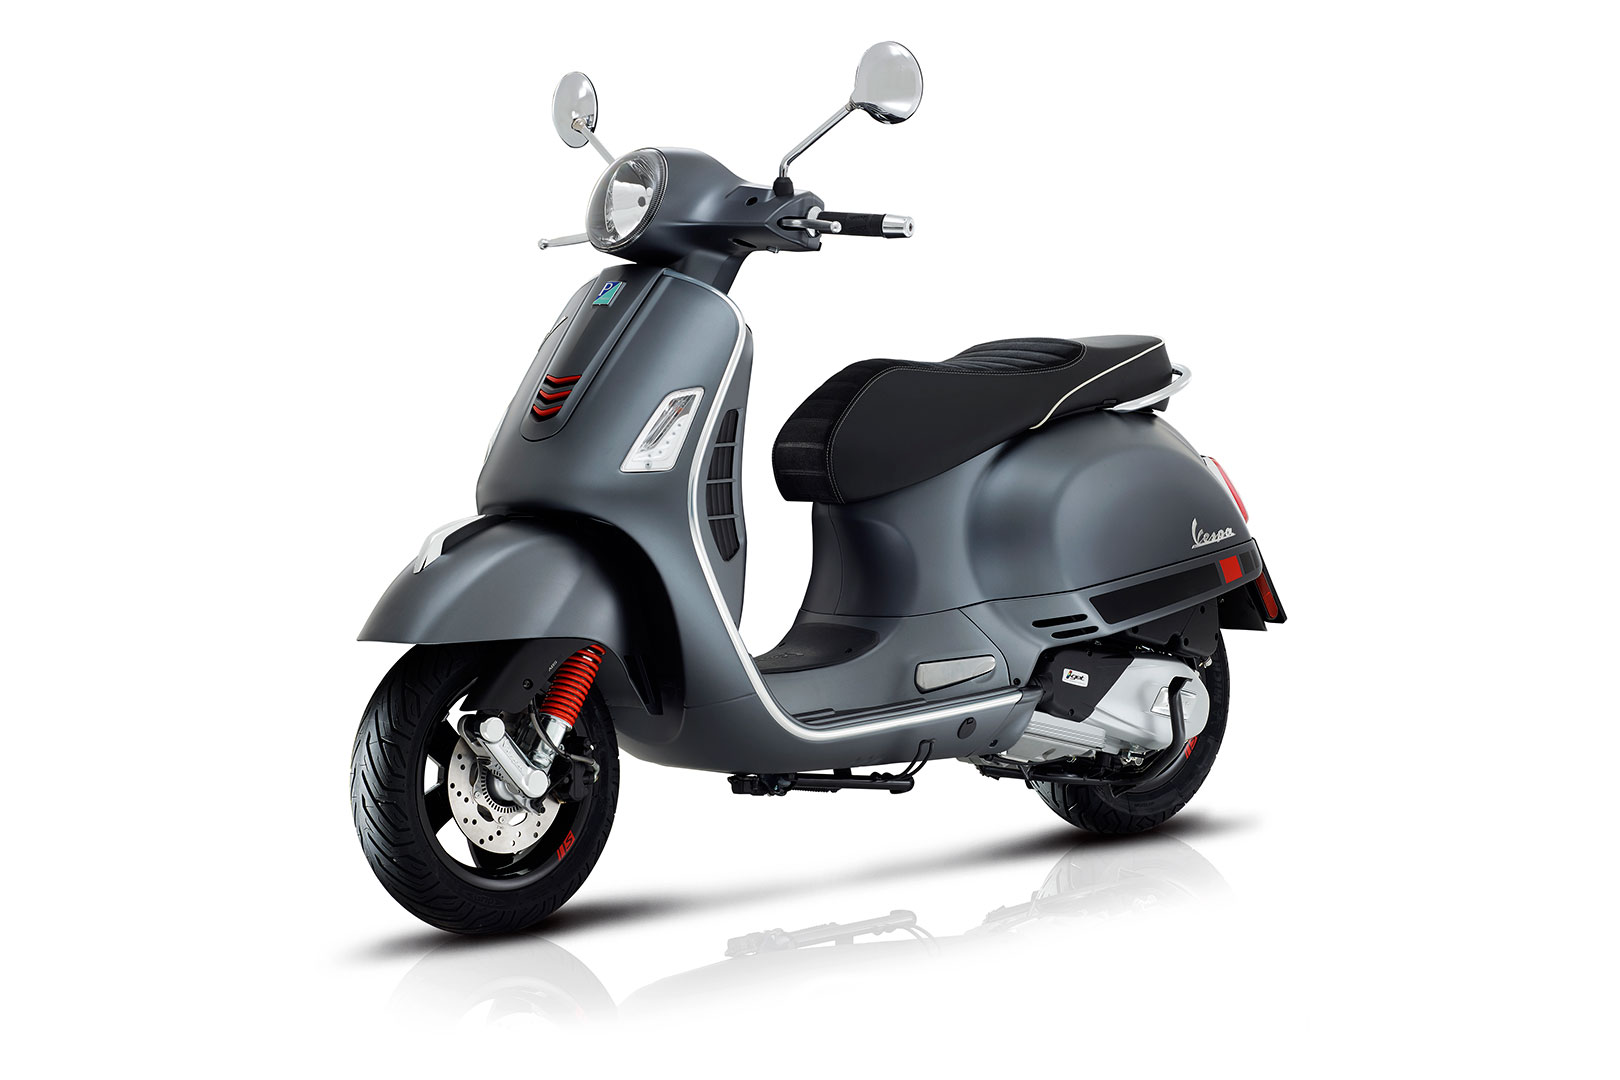 Achat Vespa GTS SuperSport ABS 125 cm3 neuf à Nice chez Scoot Center-3